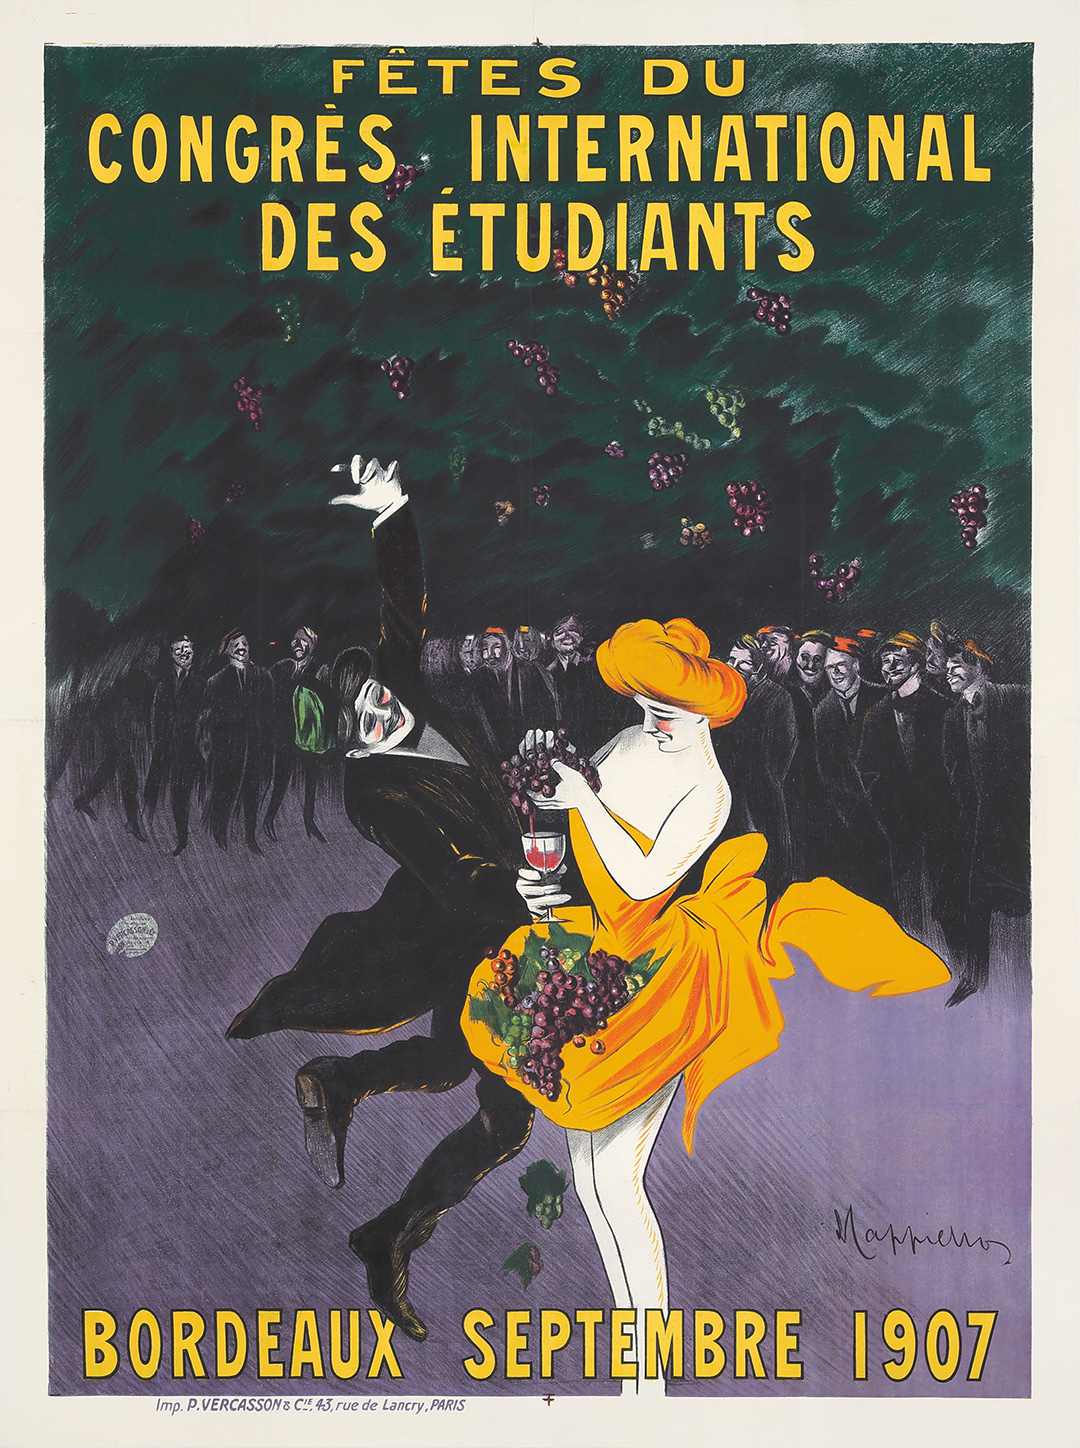 271. Congrès International Des Étudiants. 1907. ($5,520)